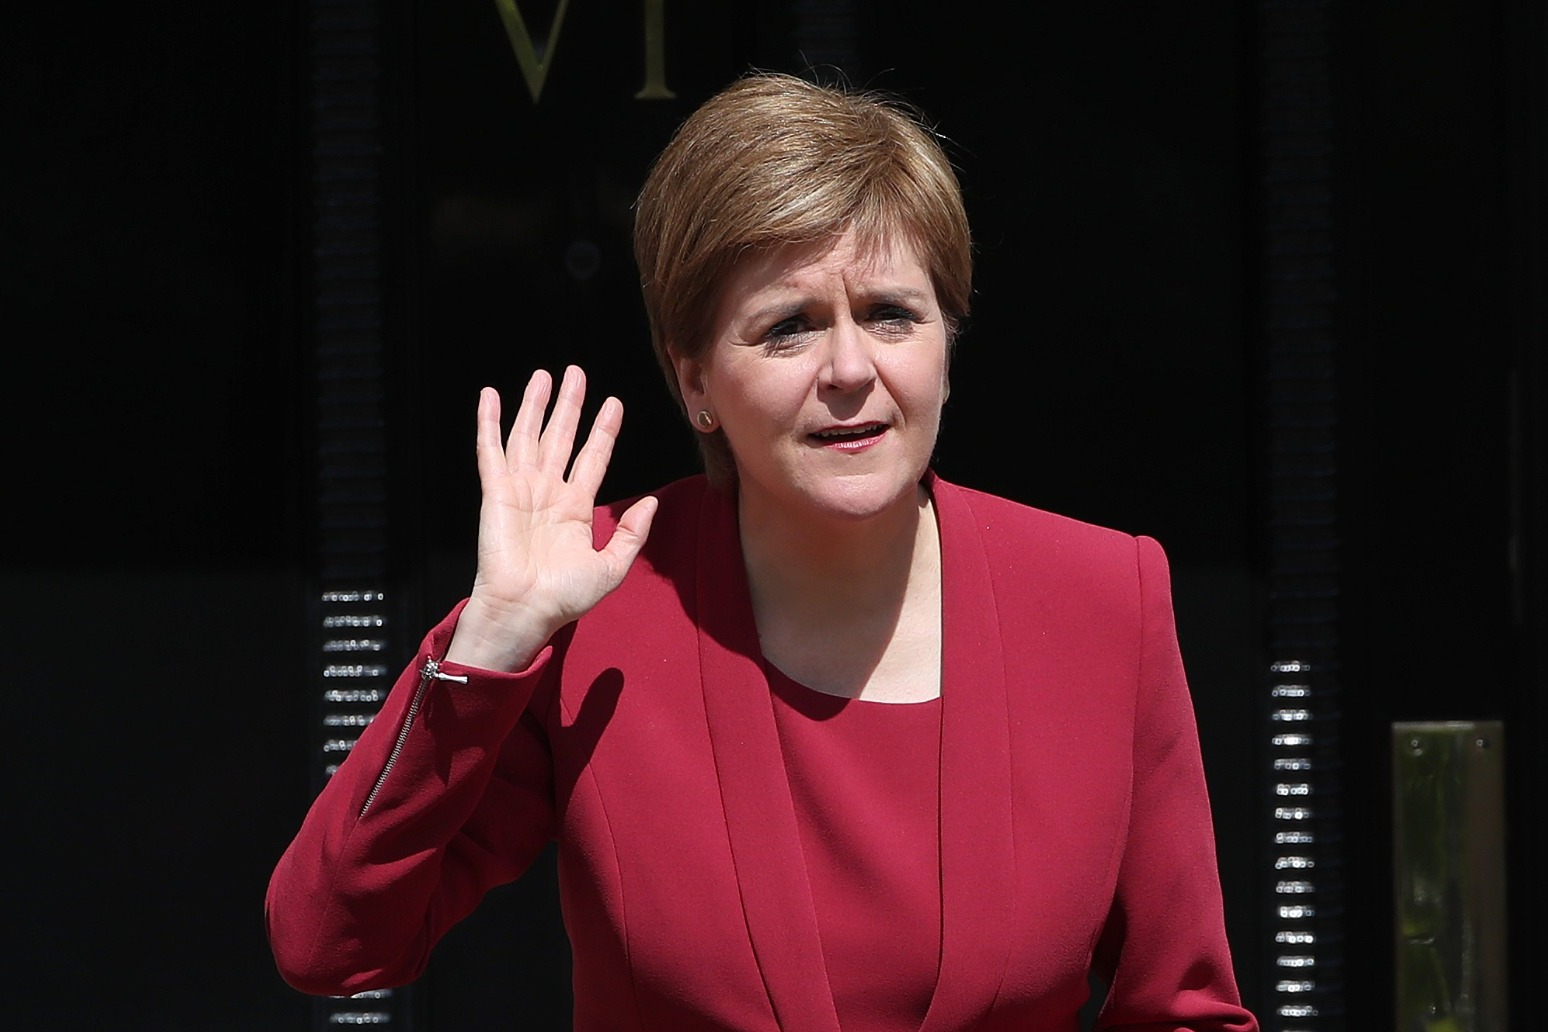 New Cabinet gives Scotland 'serious Government', says Nicola Sturgeon